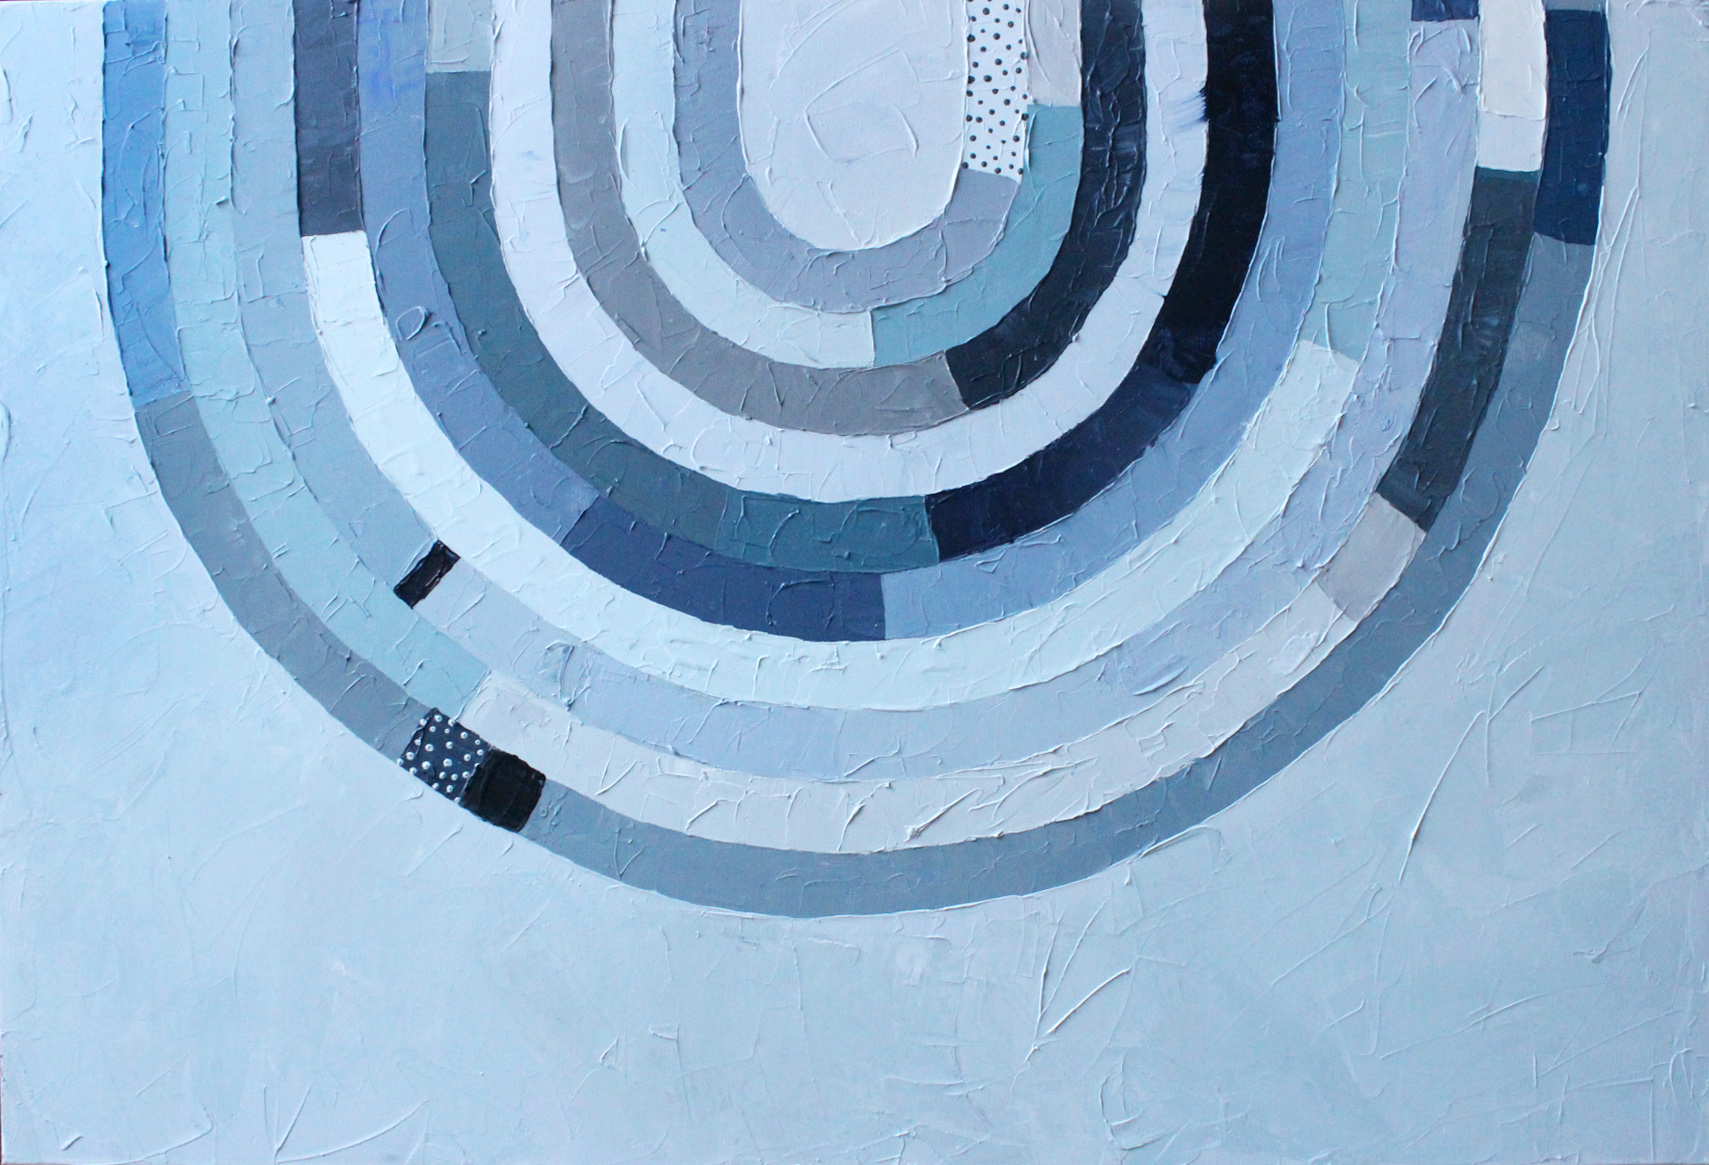 Abstract_Painting_24x36_AshleyMary_003